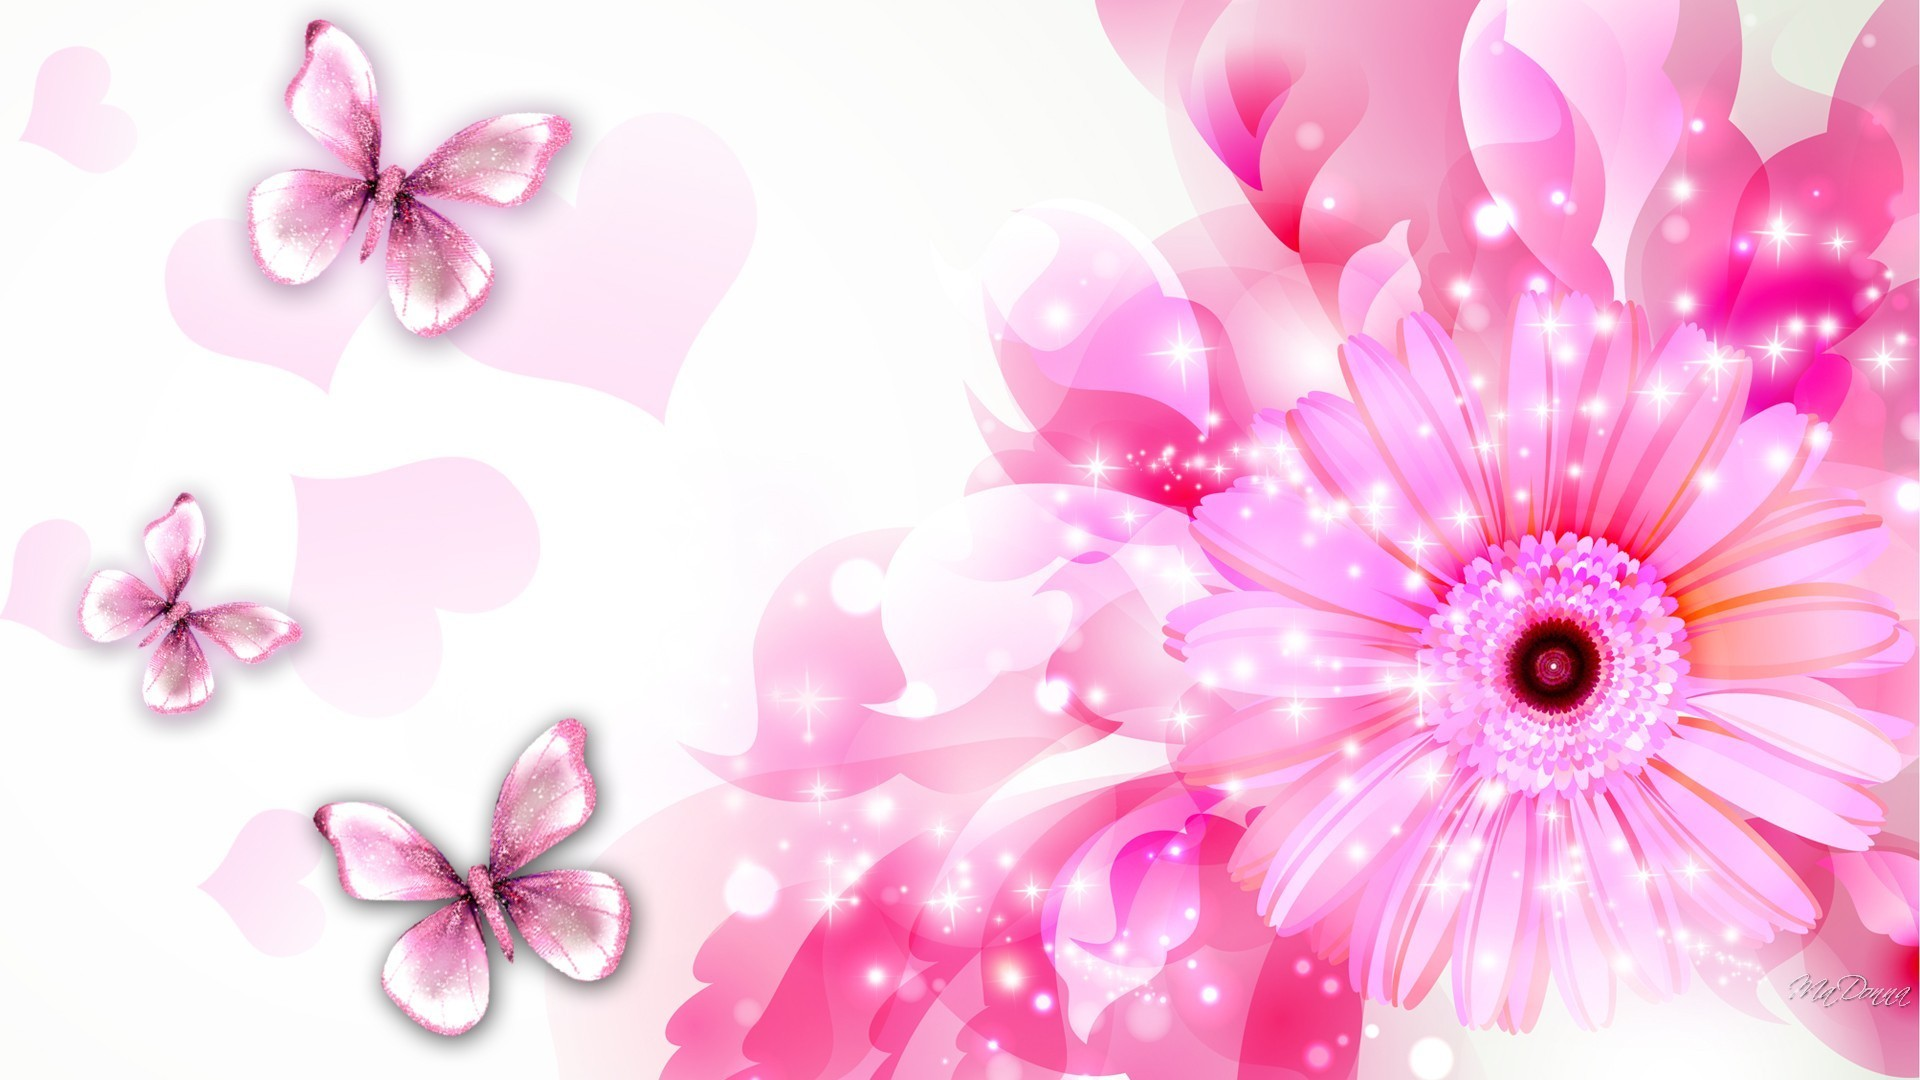 Flowers And Hearts Wallpaper 1920x1080